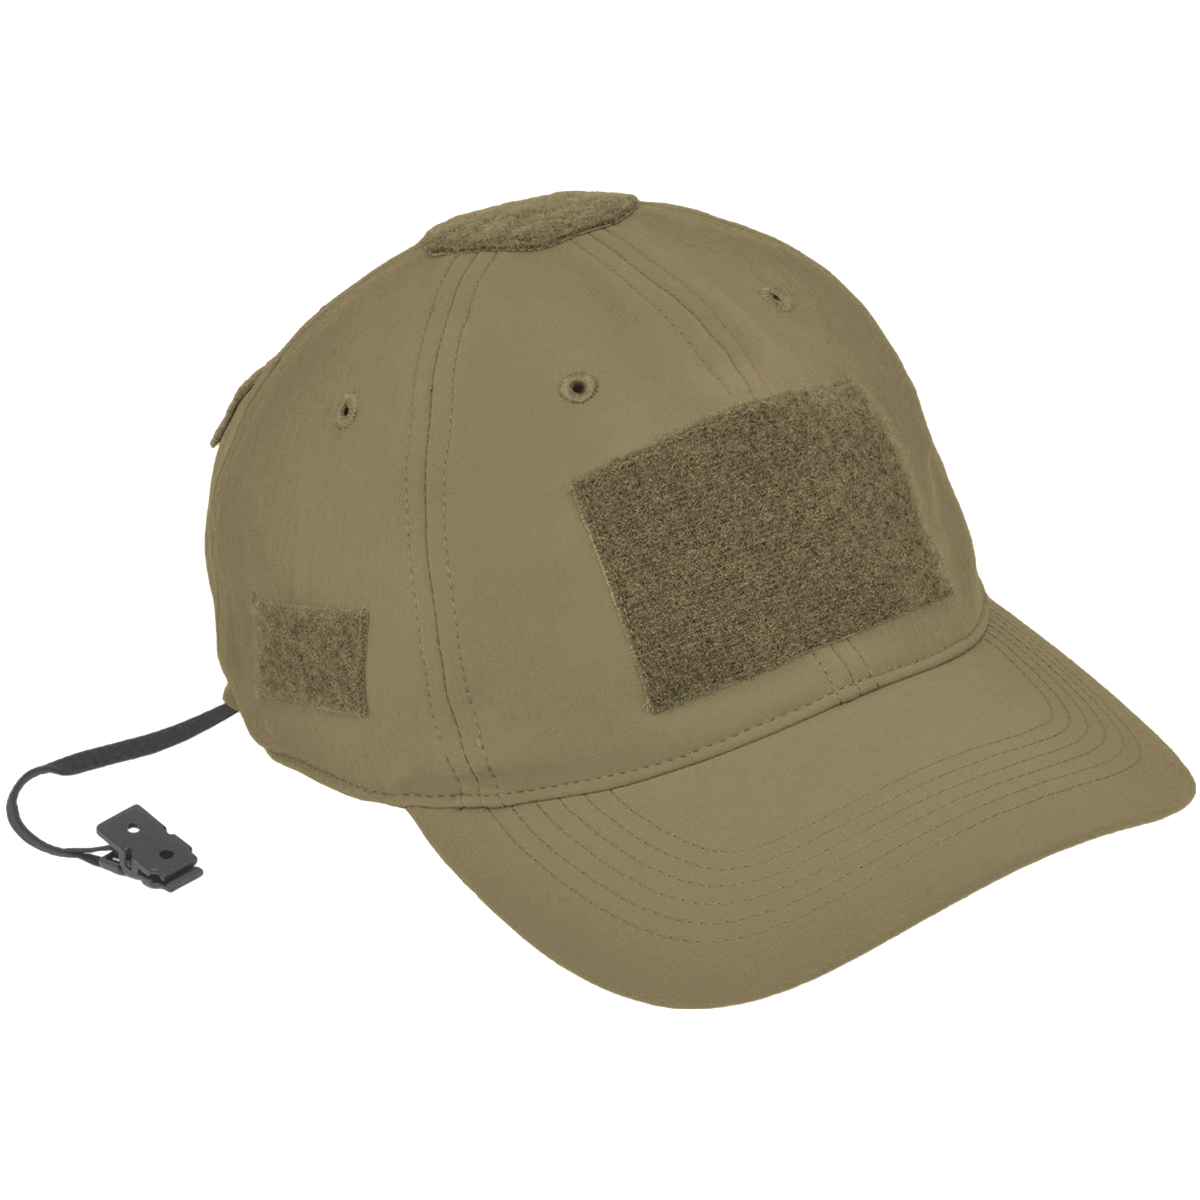 HAZARD 4 PMC MODULAR CONTRACTOR BALL CAP MILITARY AIRSOFT COMBAT TACTICAL COYOTE